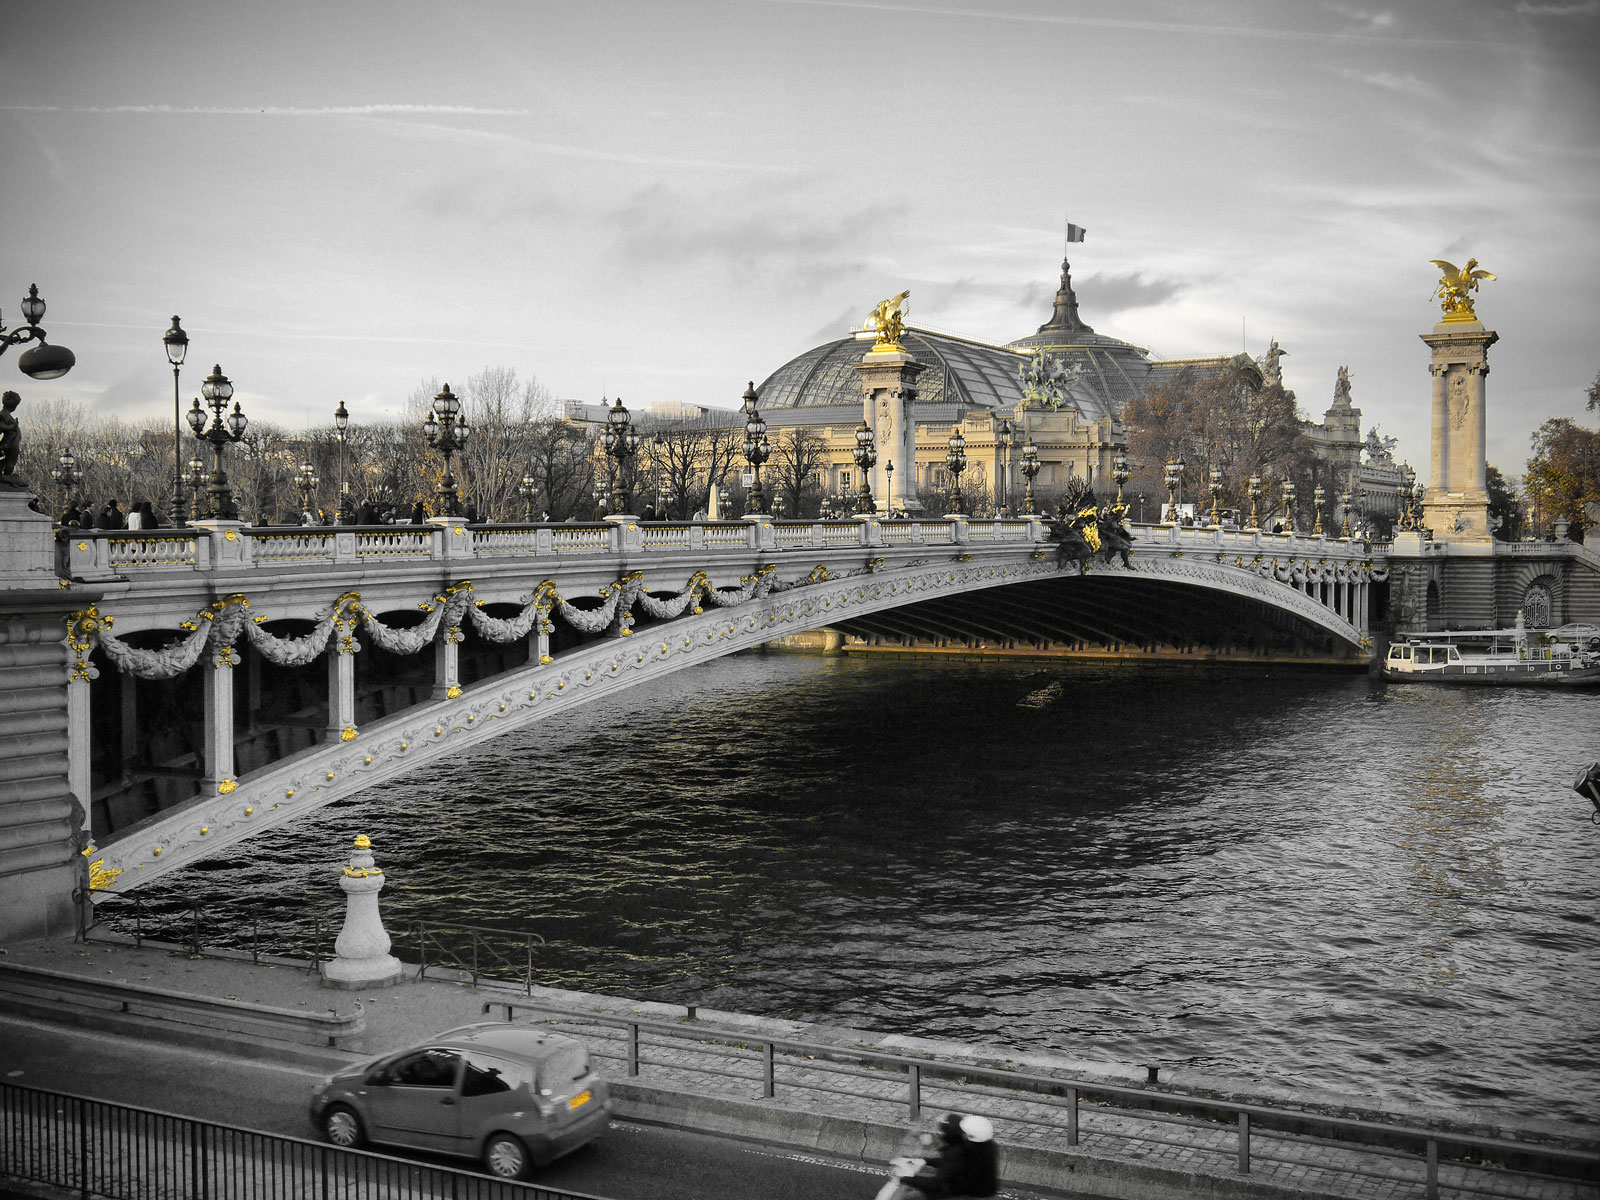 Art Nouveau Design at the Pont Alexandre III - Paris, France